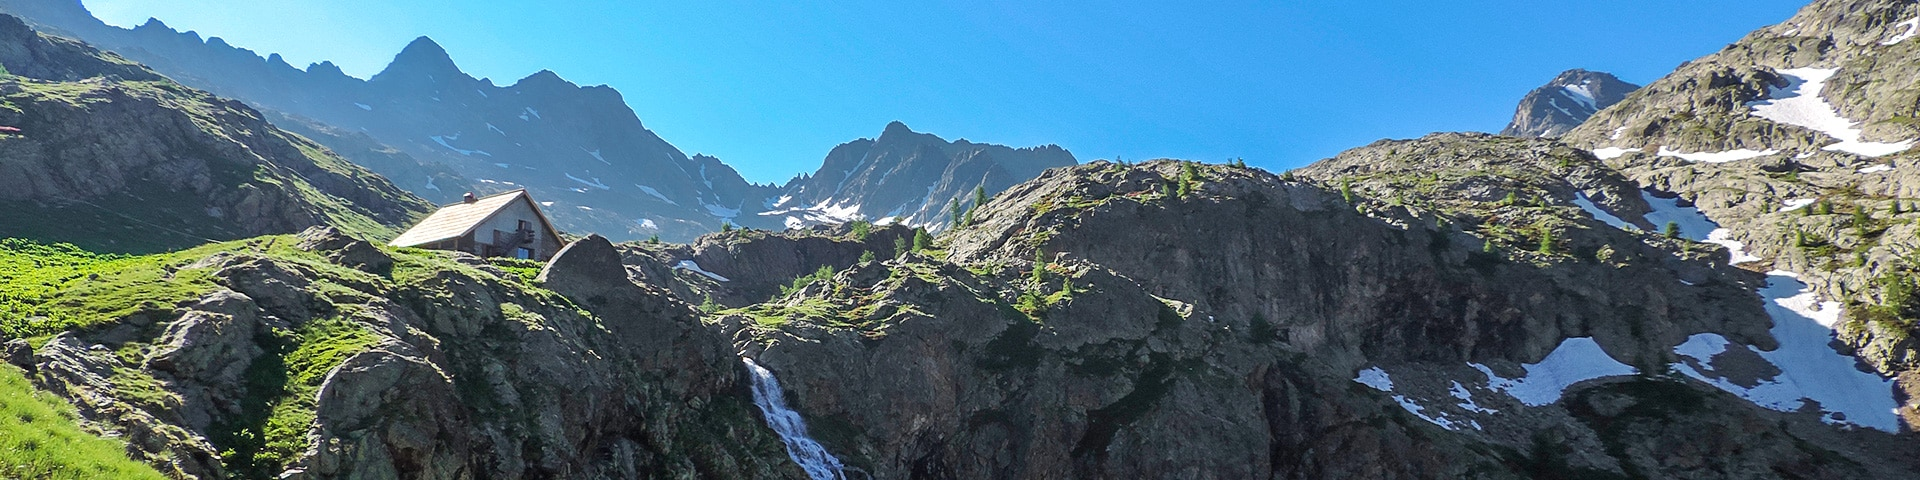 Panorama from the Lacs de Vens hike in Mercantour National Park, France''